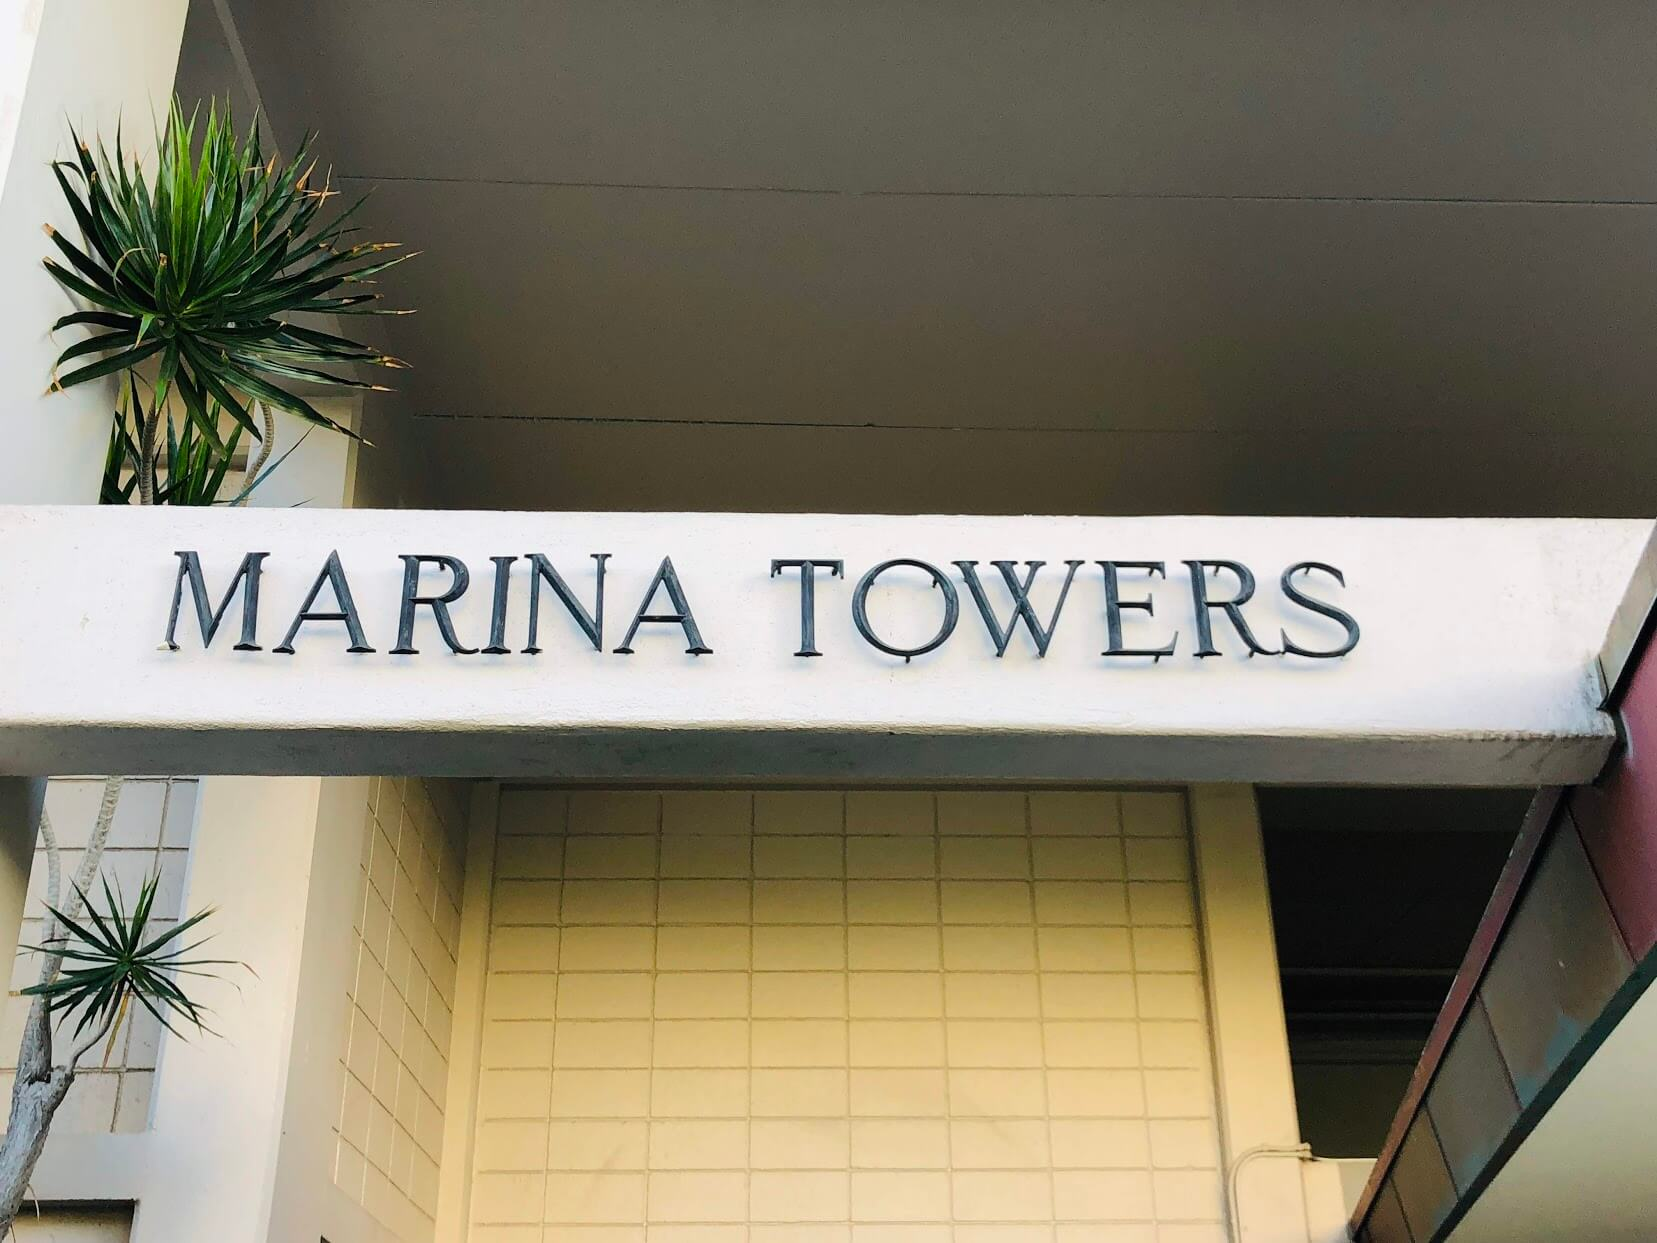 Marina Towersのロゴ